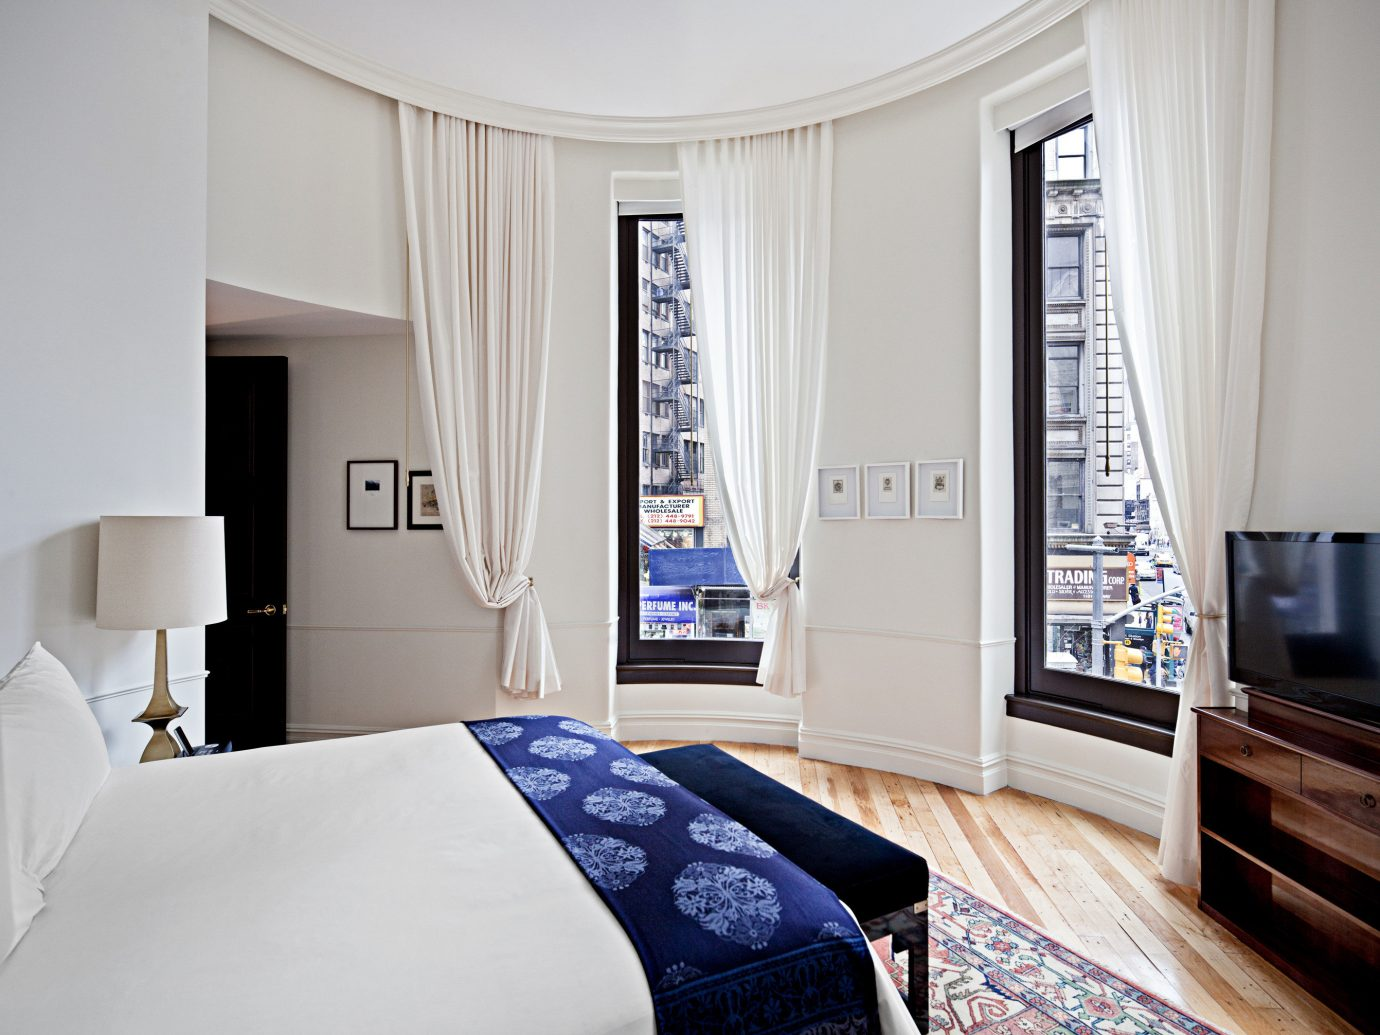 The NoMad Hotel Bedroom City Hip Hotels Luxury Luxury Travel NYC Offbeat Romantic Hotels Trip Ideas indoor wall bed room floor property window home interior design hotel living room cottage Suite estate real estate furniture textile decorated